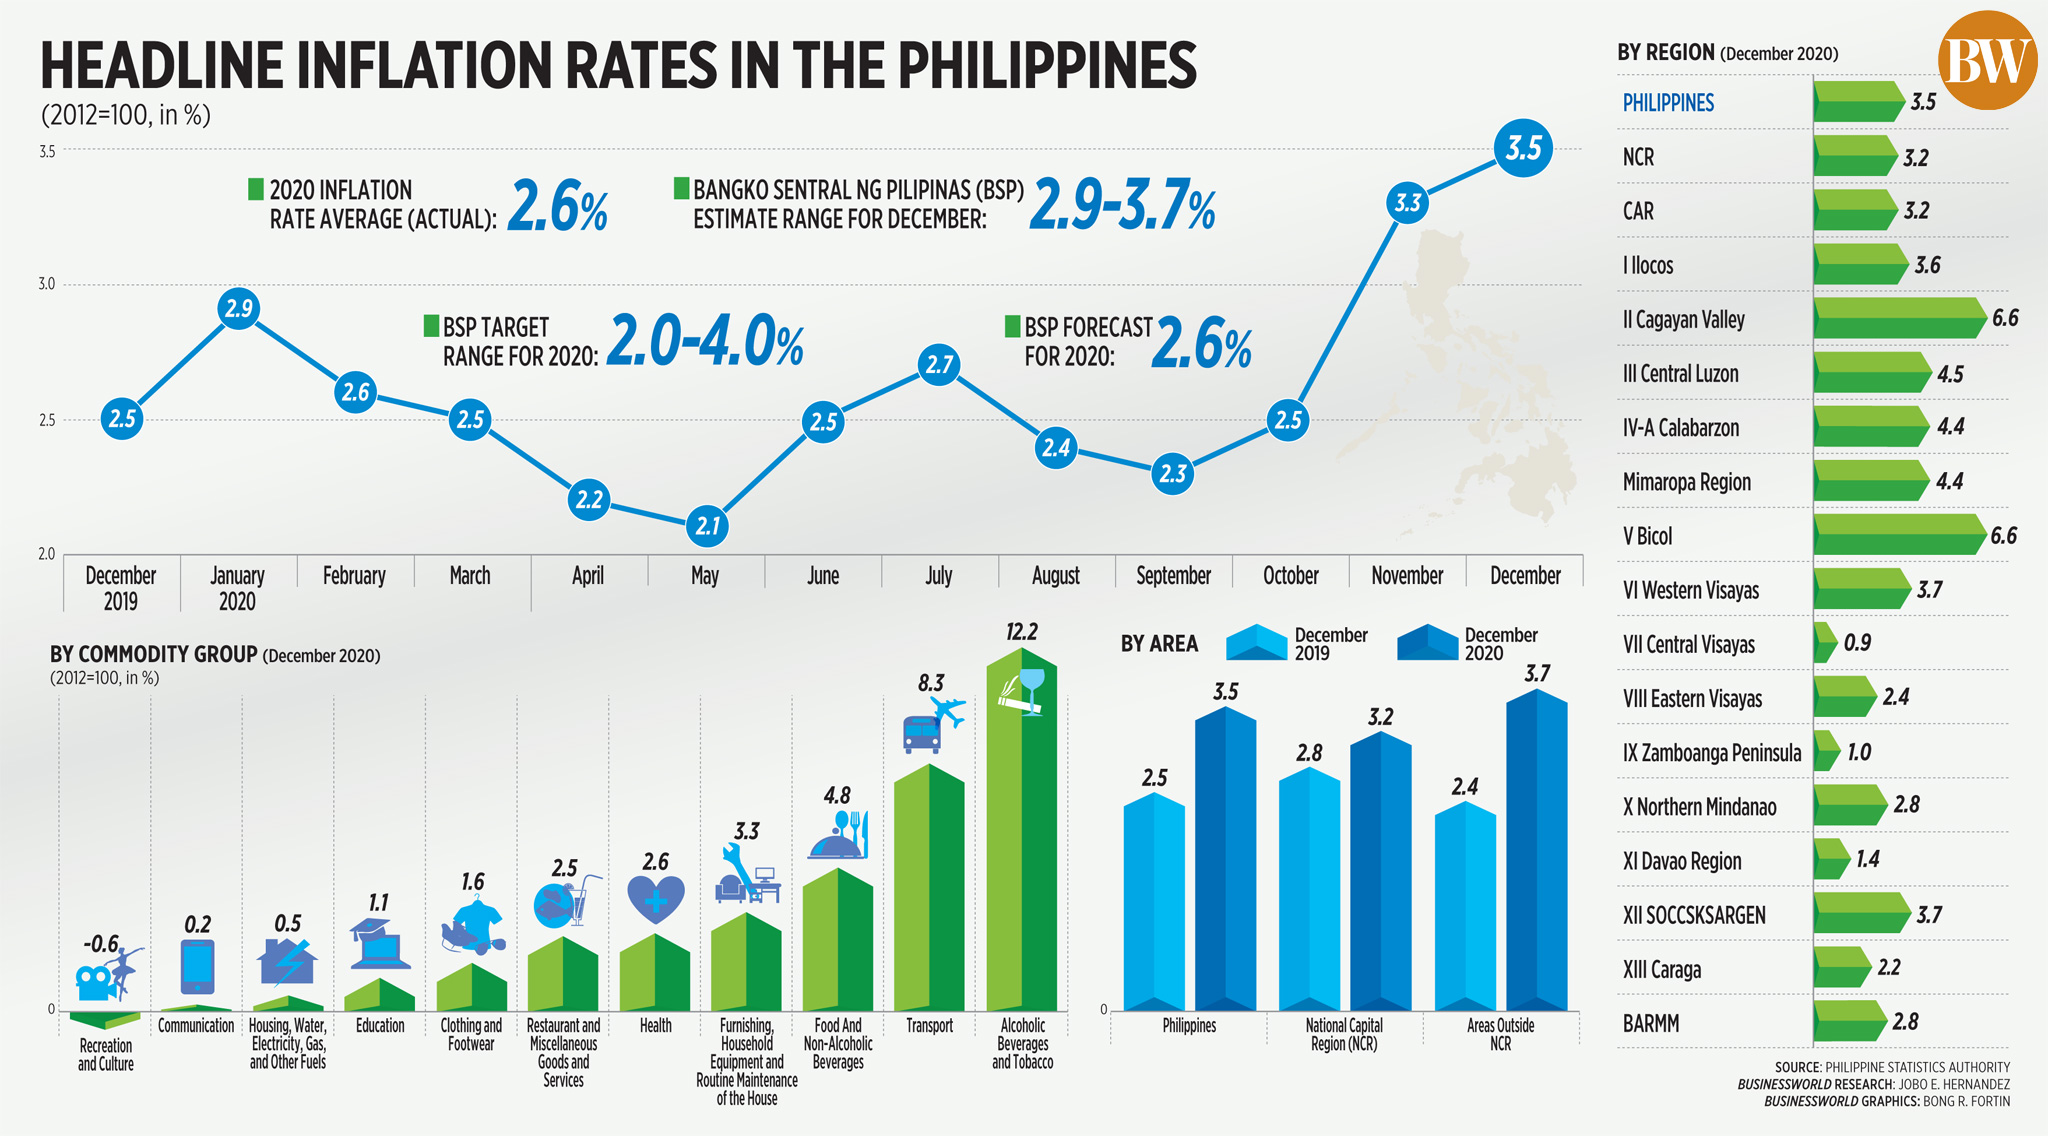 Headline inflation rates in the Philippines (December 2021)